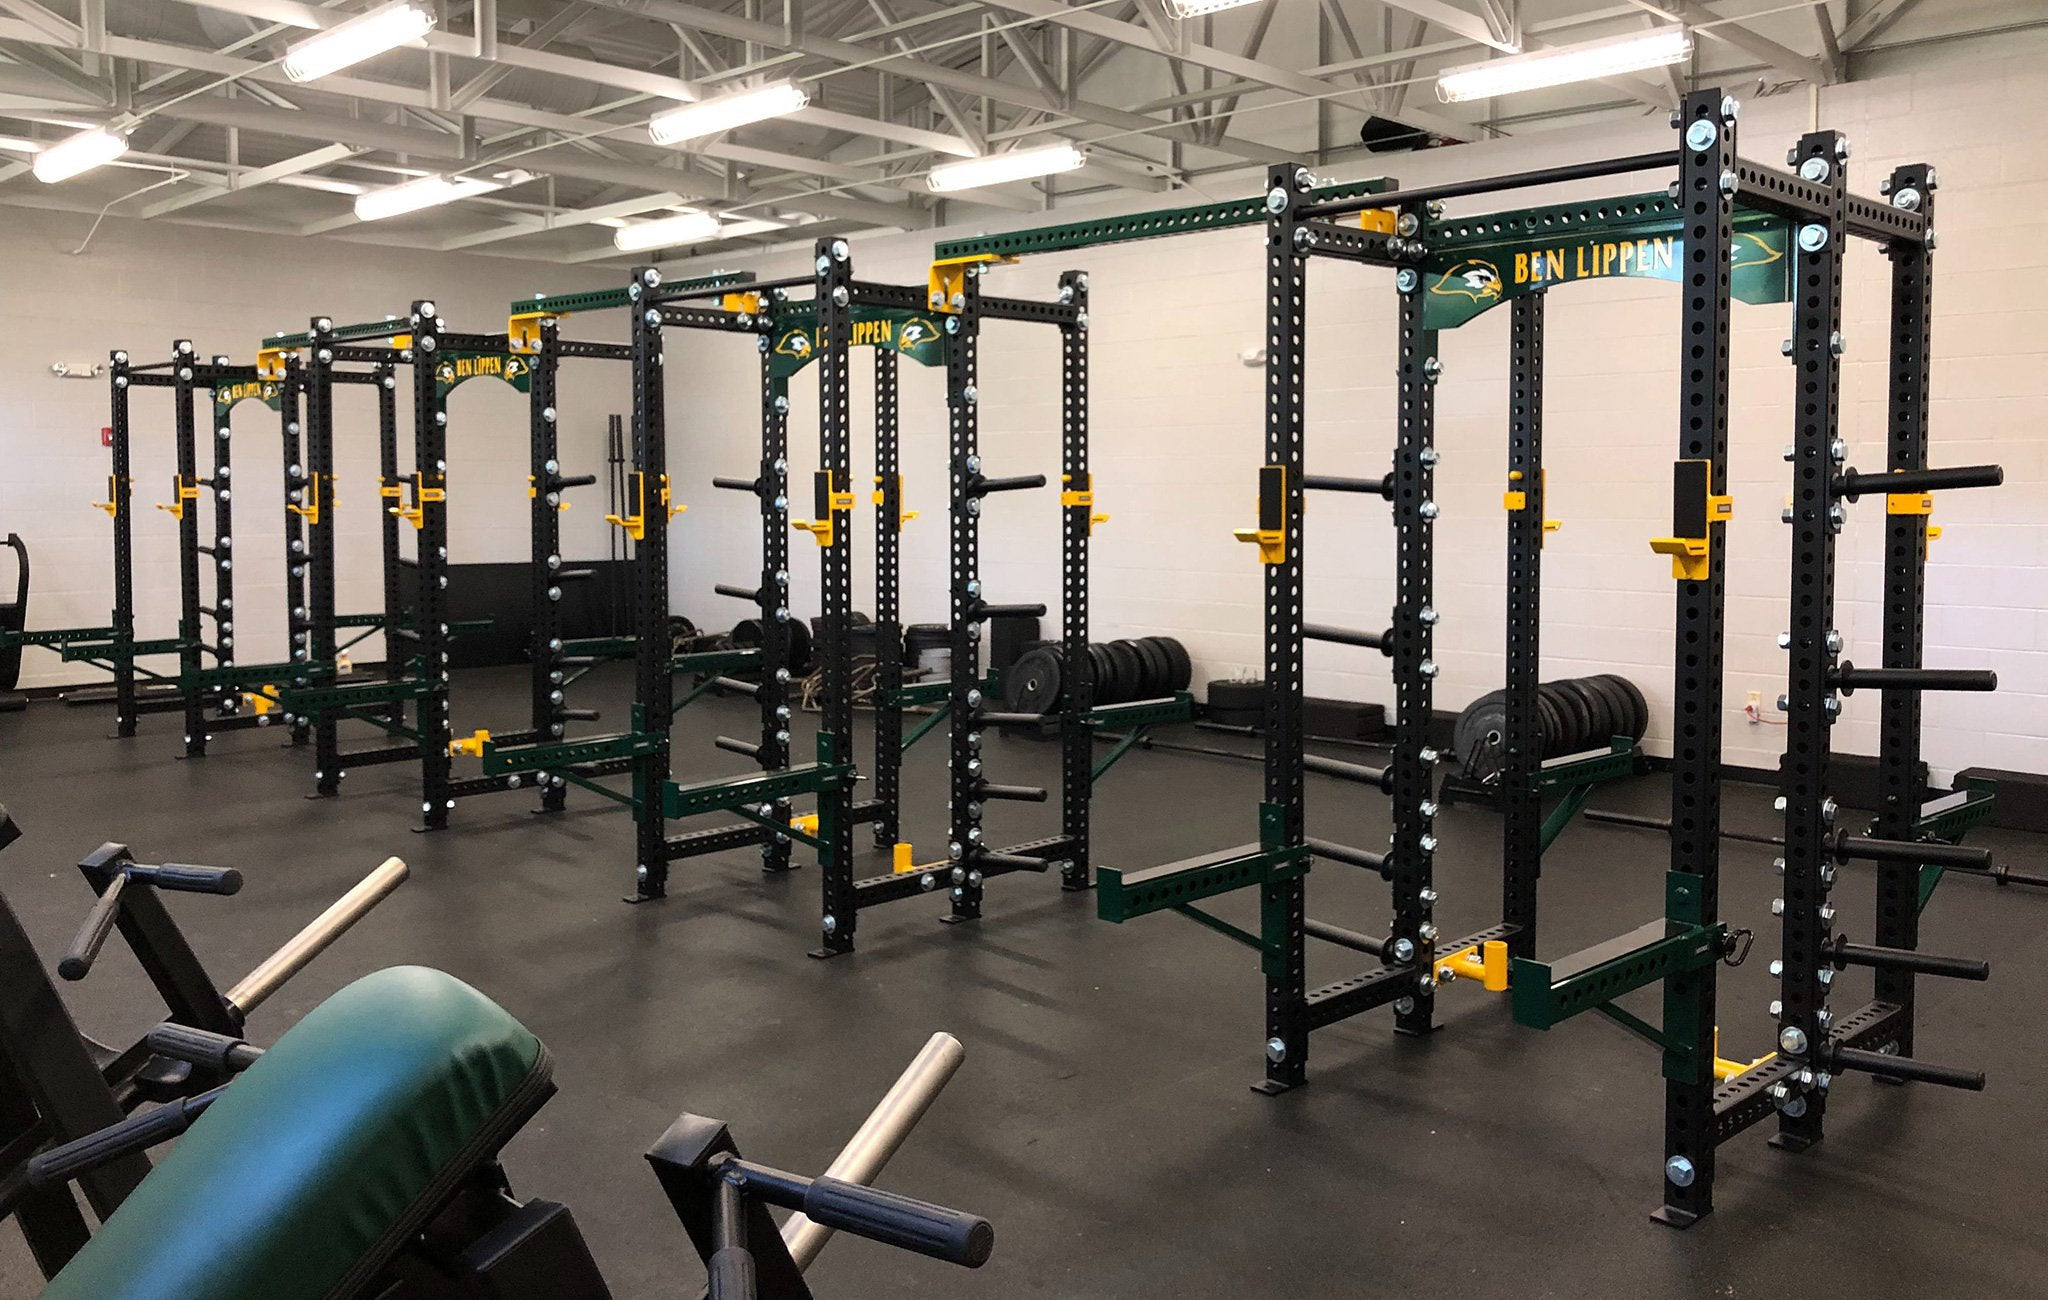 Ben Lippen High School Base Camp Double Half Racks